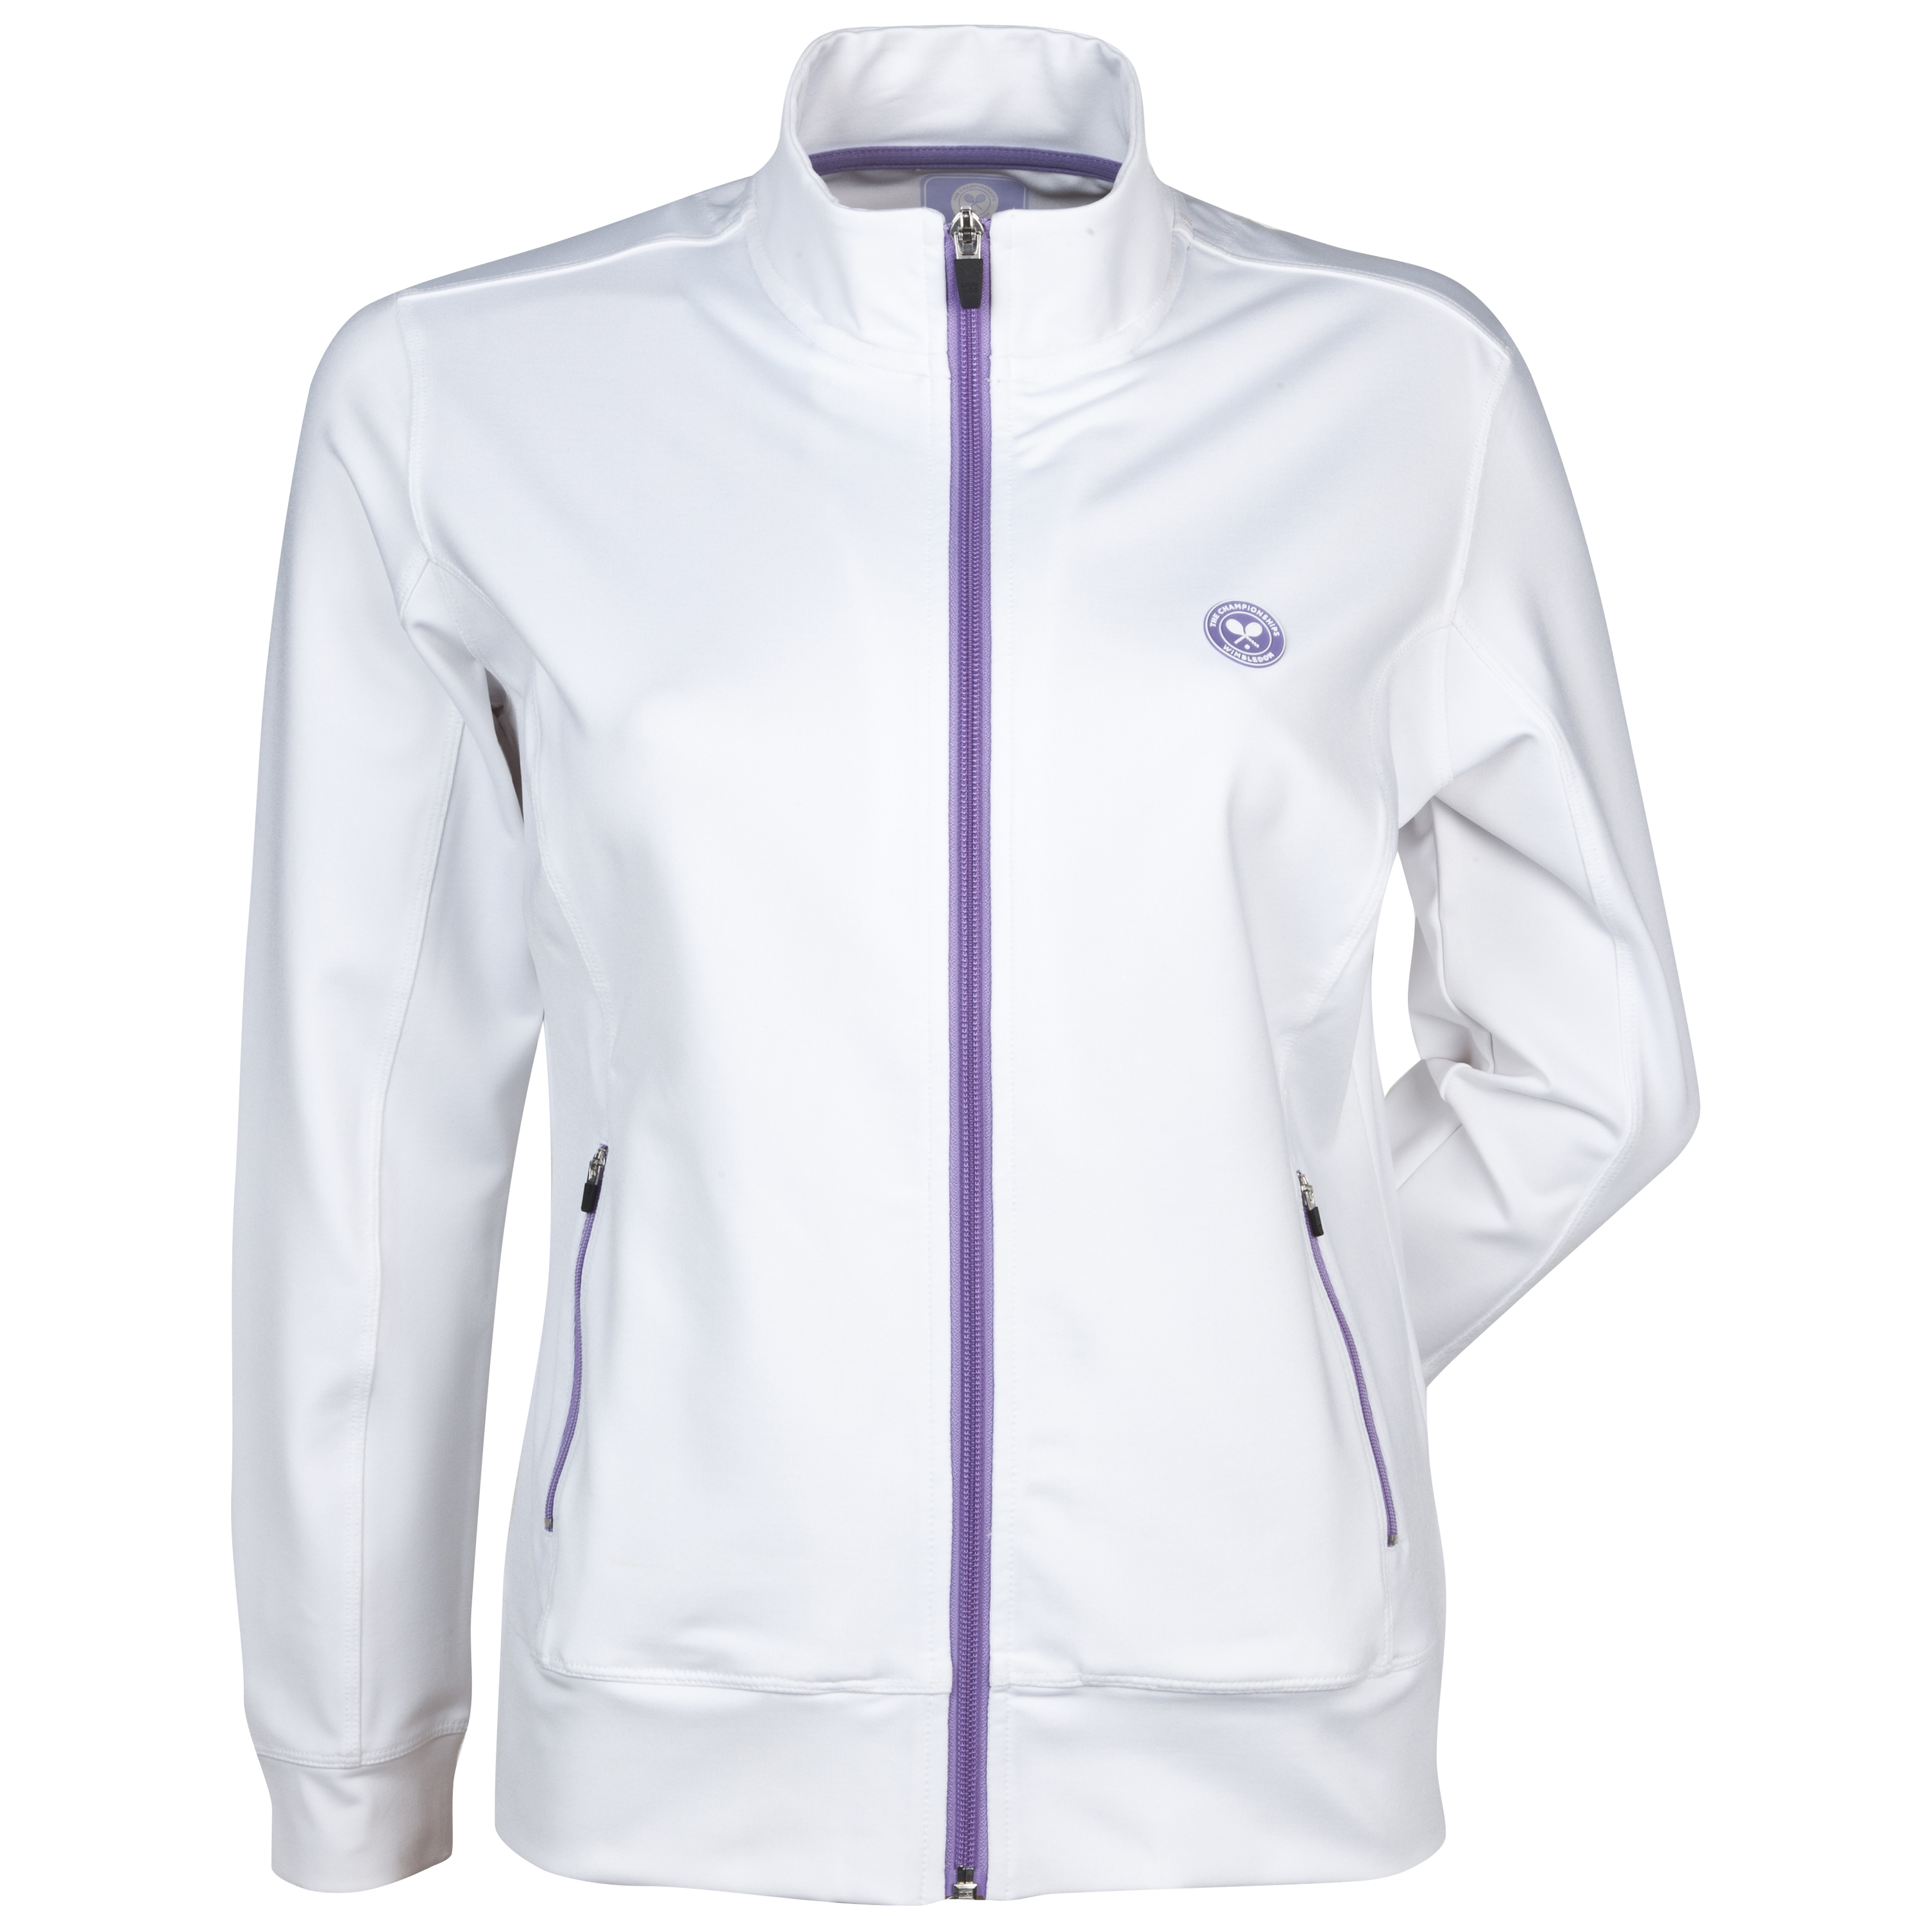 Wimbledon Track Top - Ladies - White